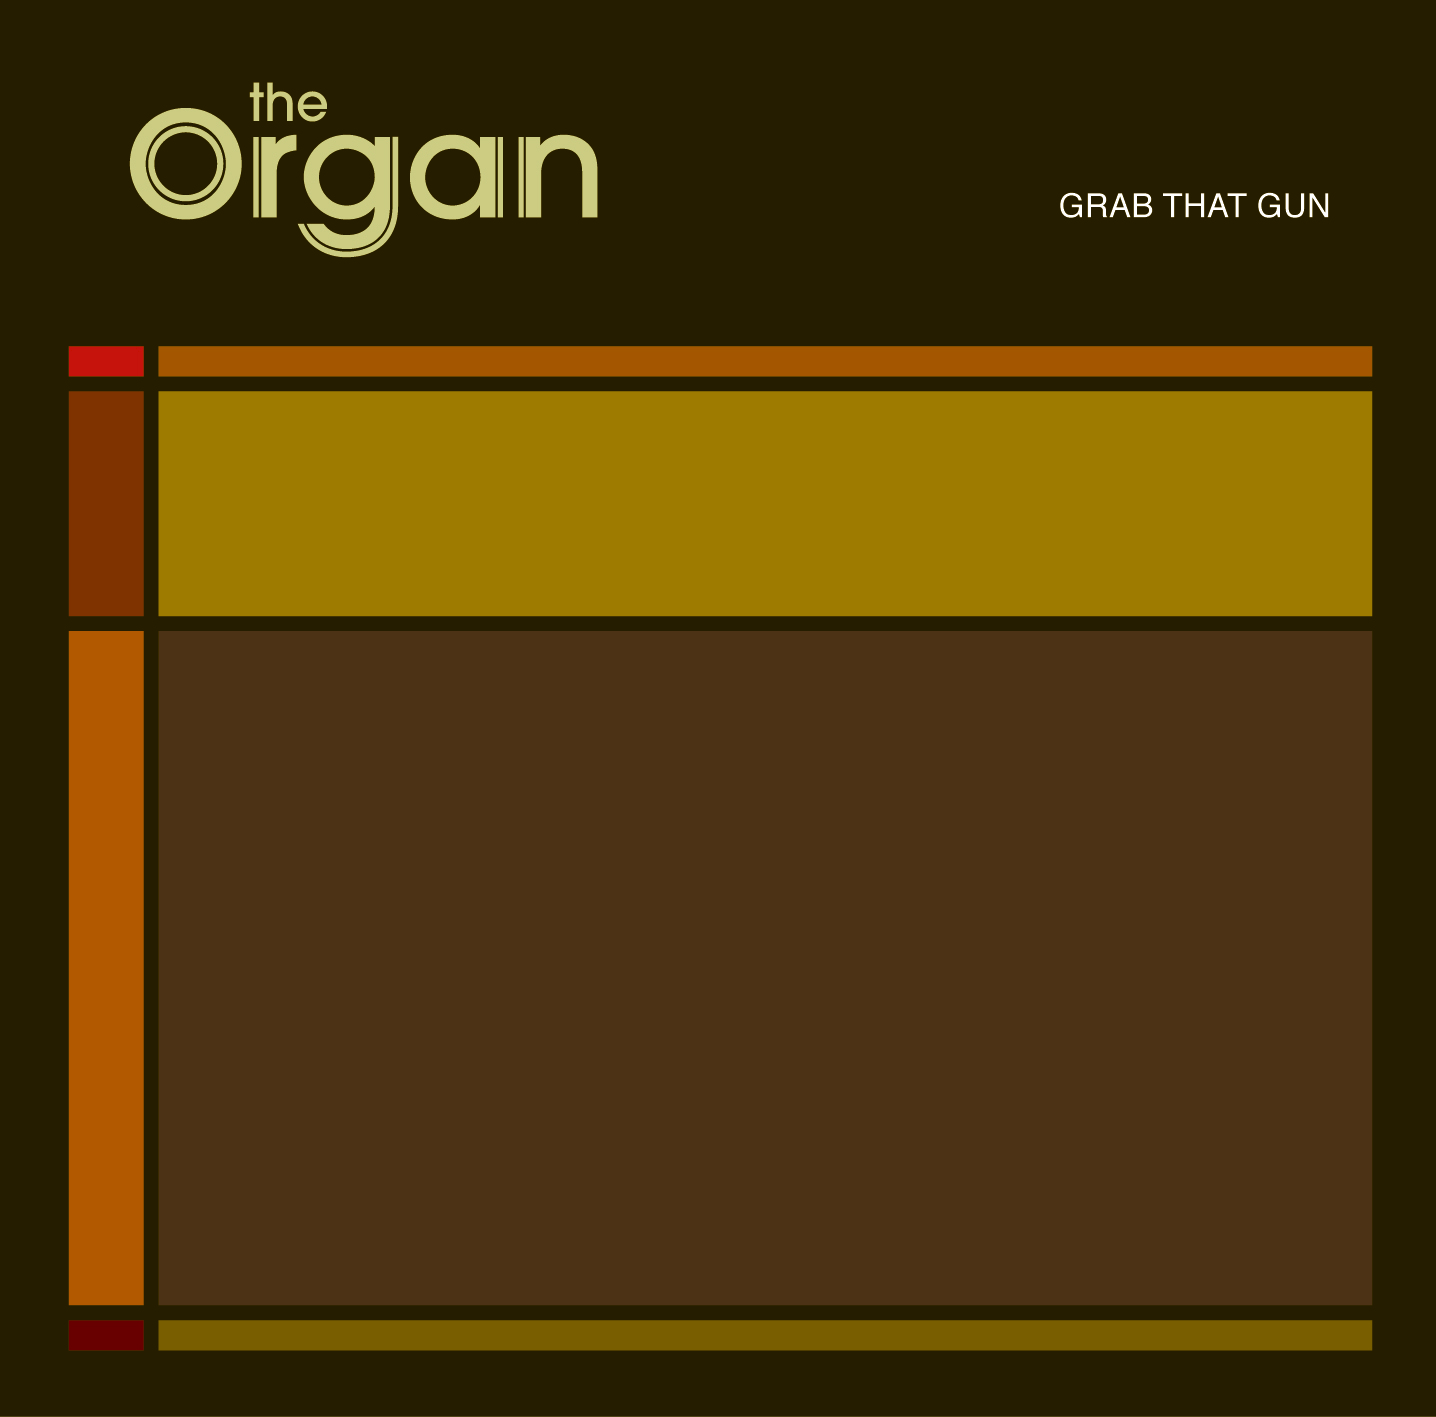 The Organ - Grab That Gun